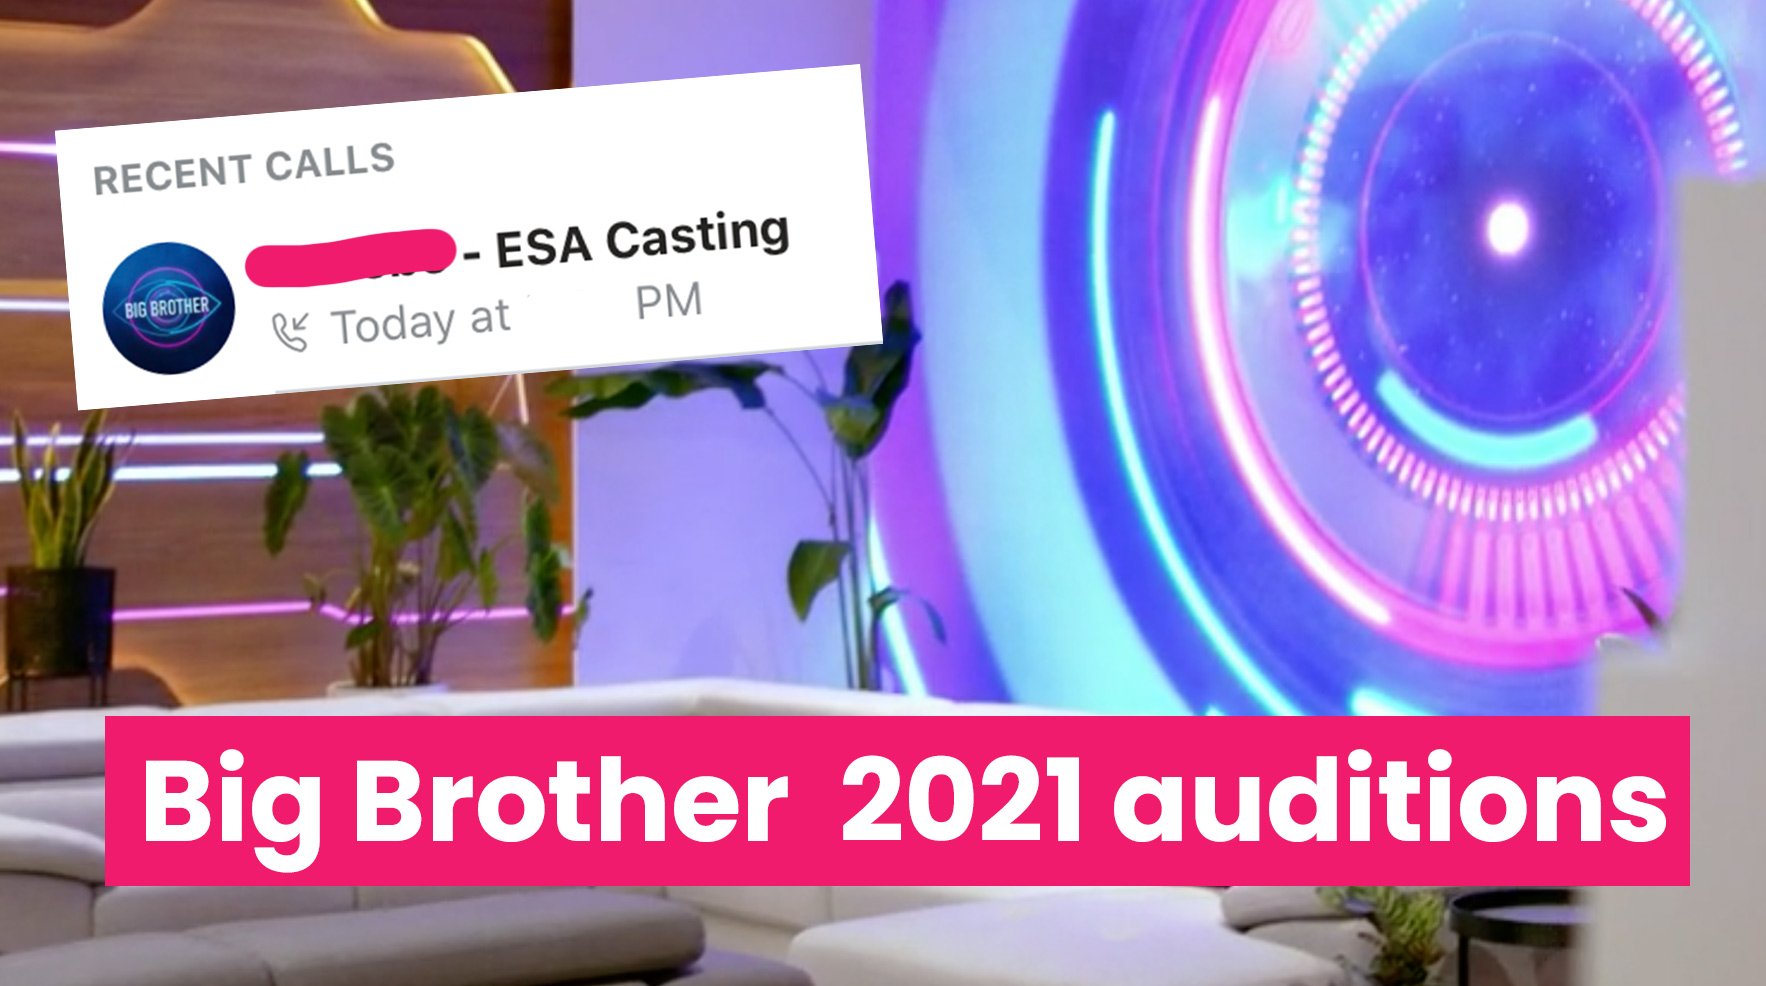 Big Brother 2021 phone auditions have started: here's what ...